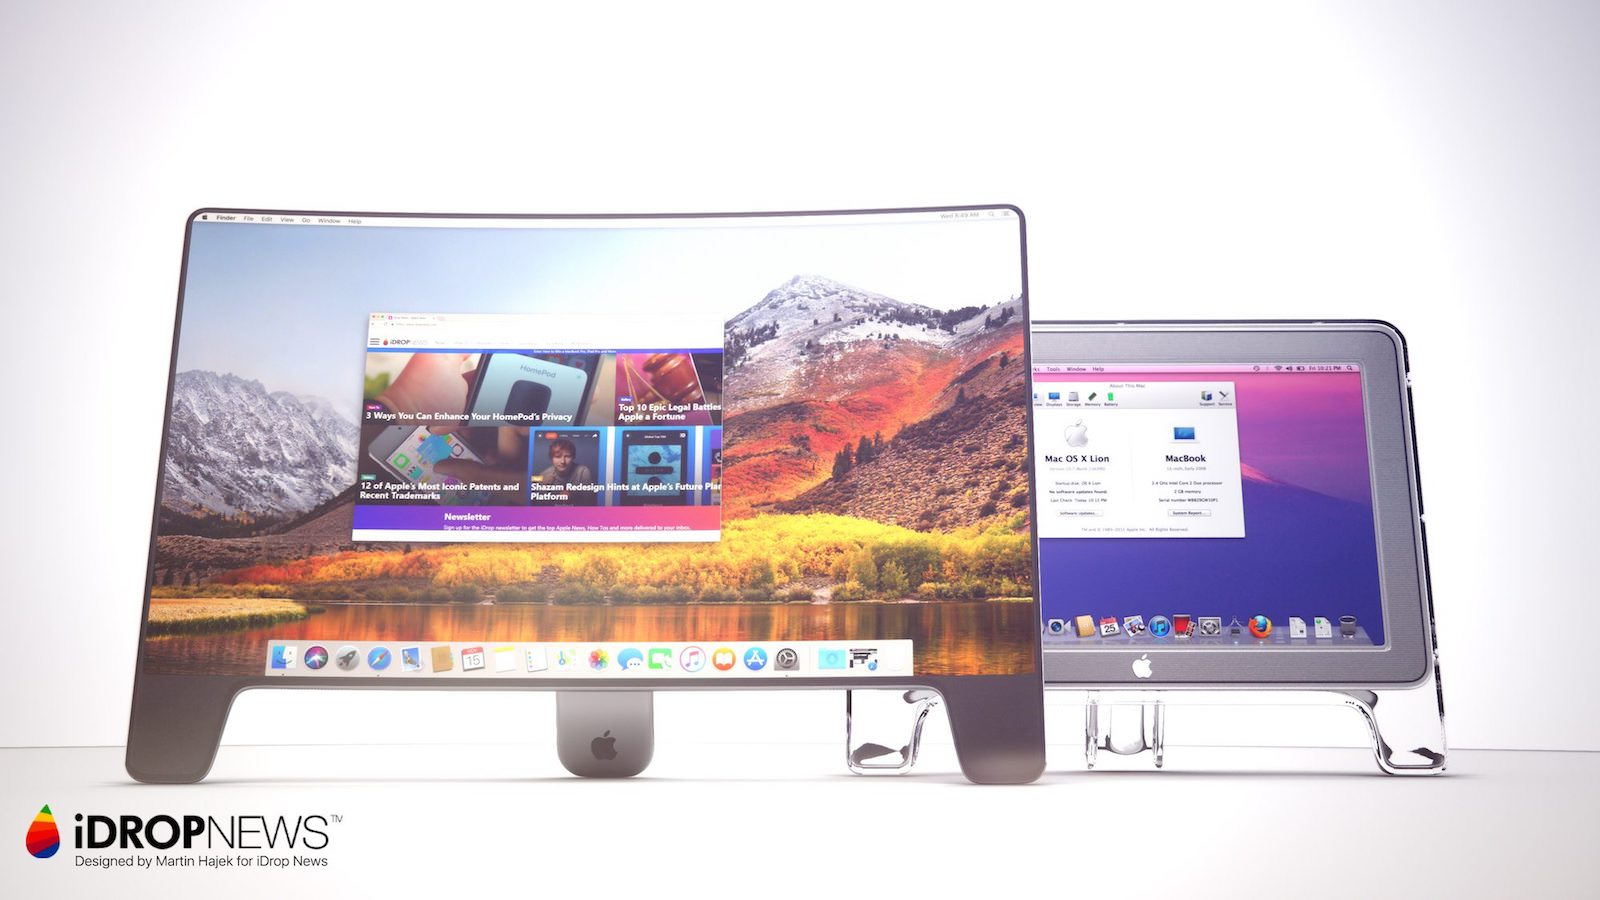 IDrop News 20th Anniversary Apple Studio Display Monitor Concept 2